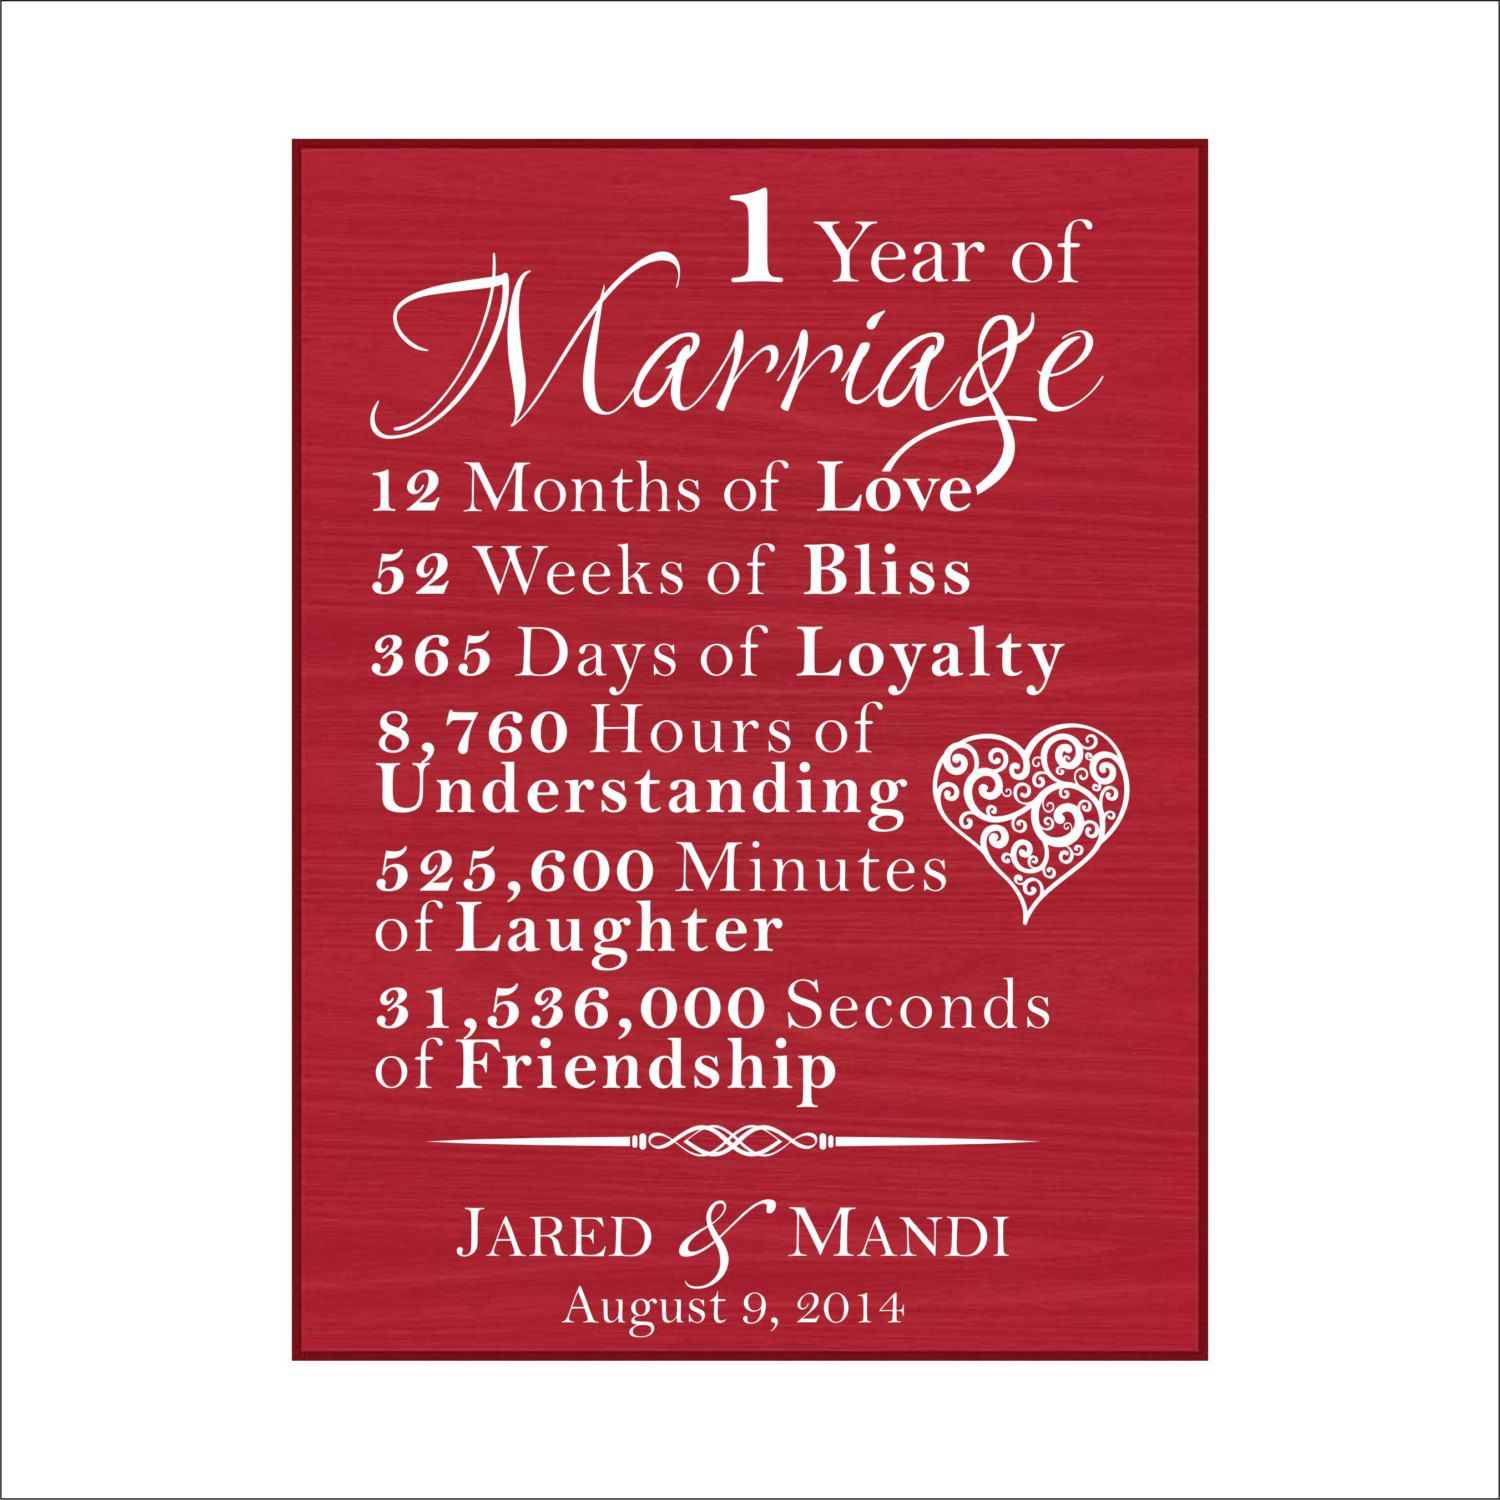 Personalized Anniversary Gift Wedding Anniversary Wall Art Quot 1 Year 12 Months 365 Days Personalized Anniversary Gifts Wedding Anniversary Anniversary